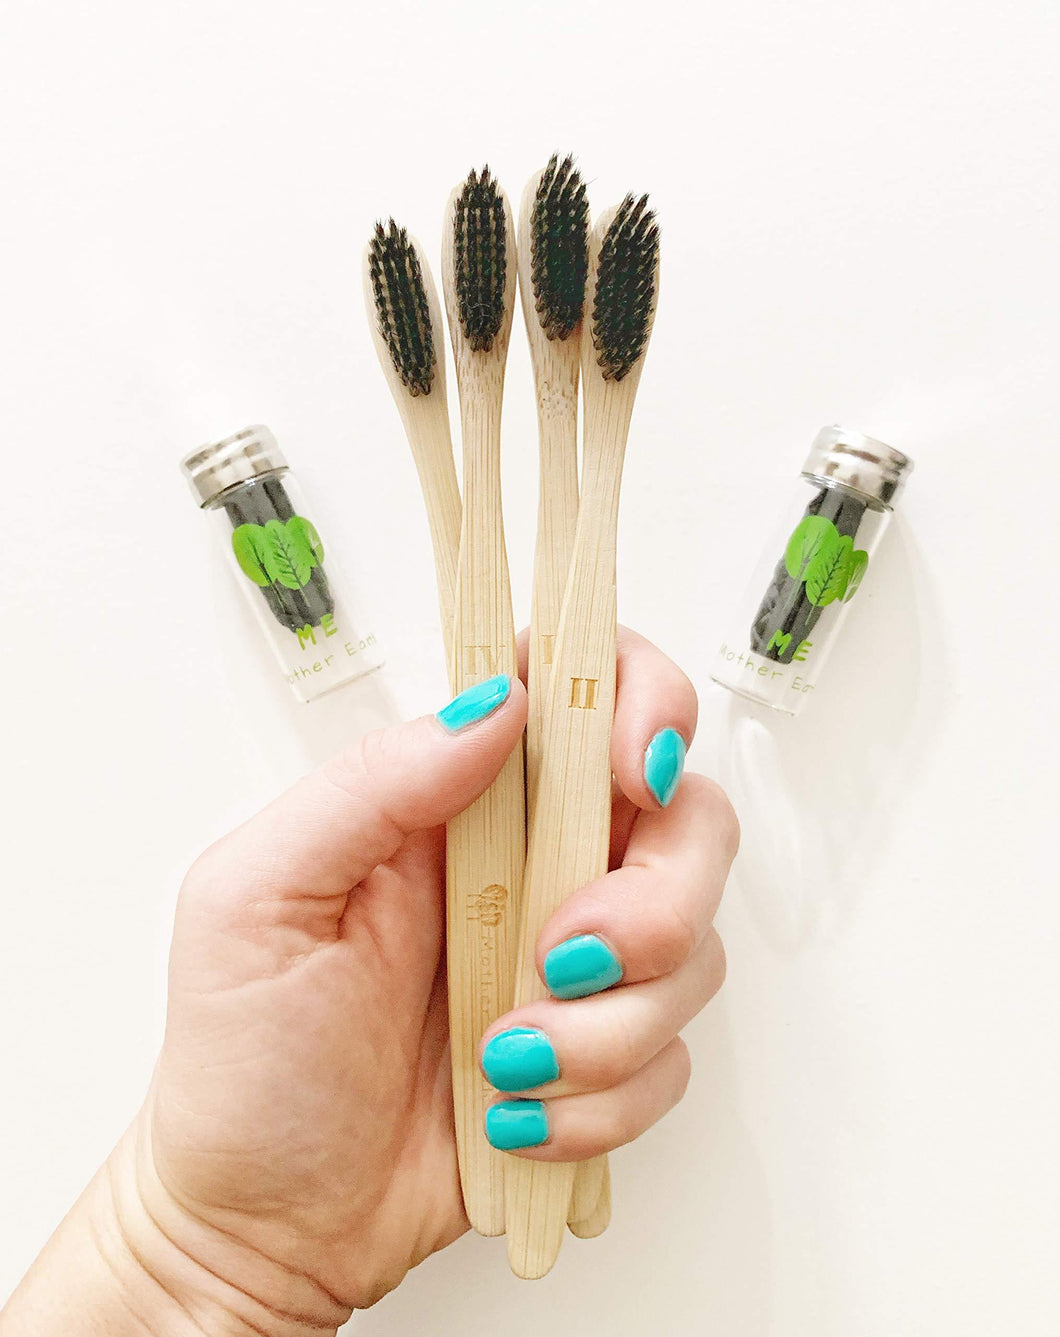 Plastic-free bamboo toothbrushes and floss.